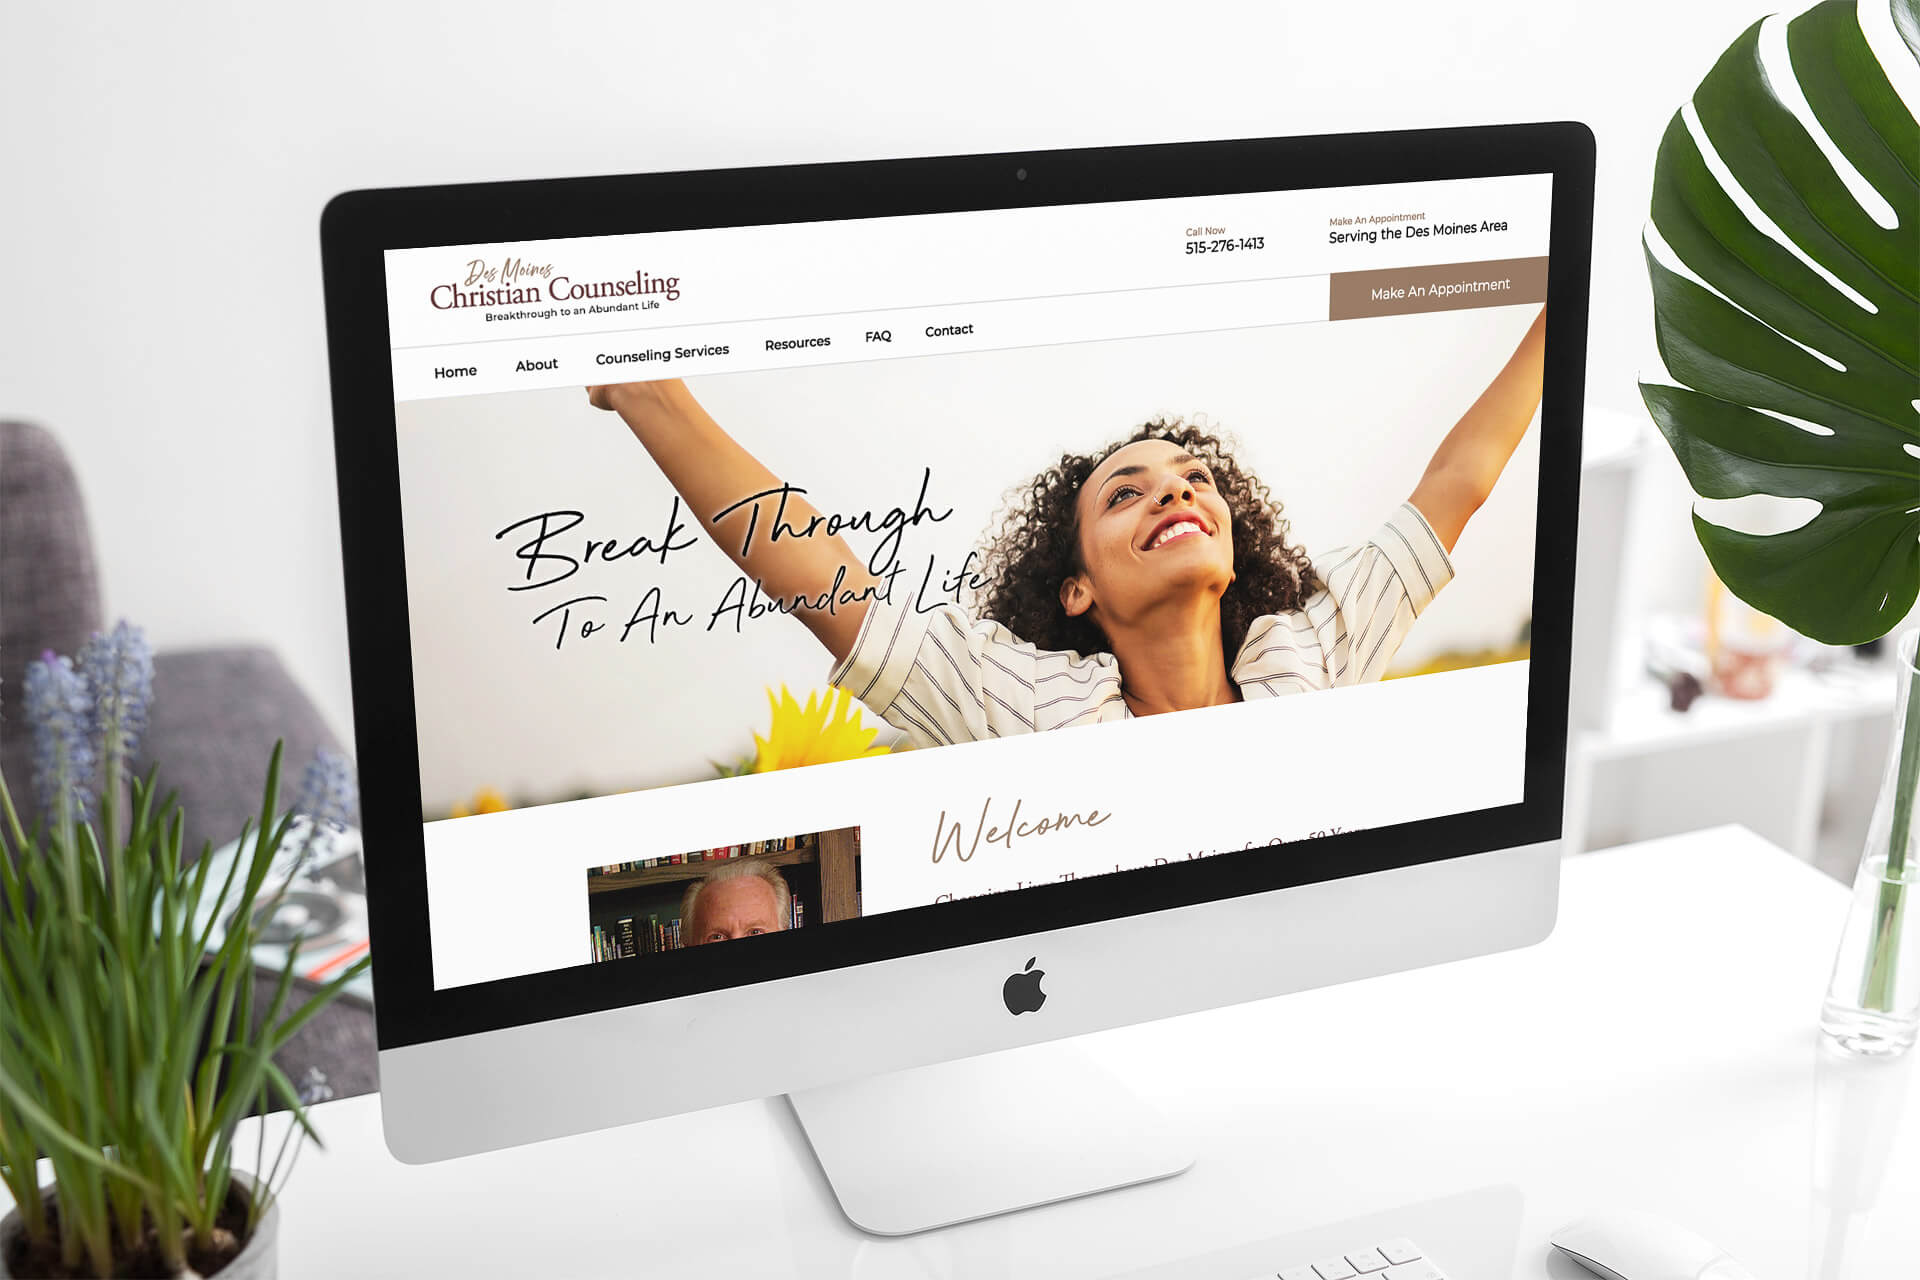 Website Design for Des Moines Christian Counseling